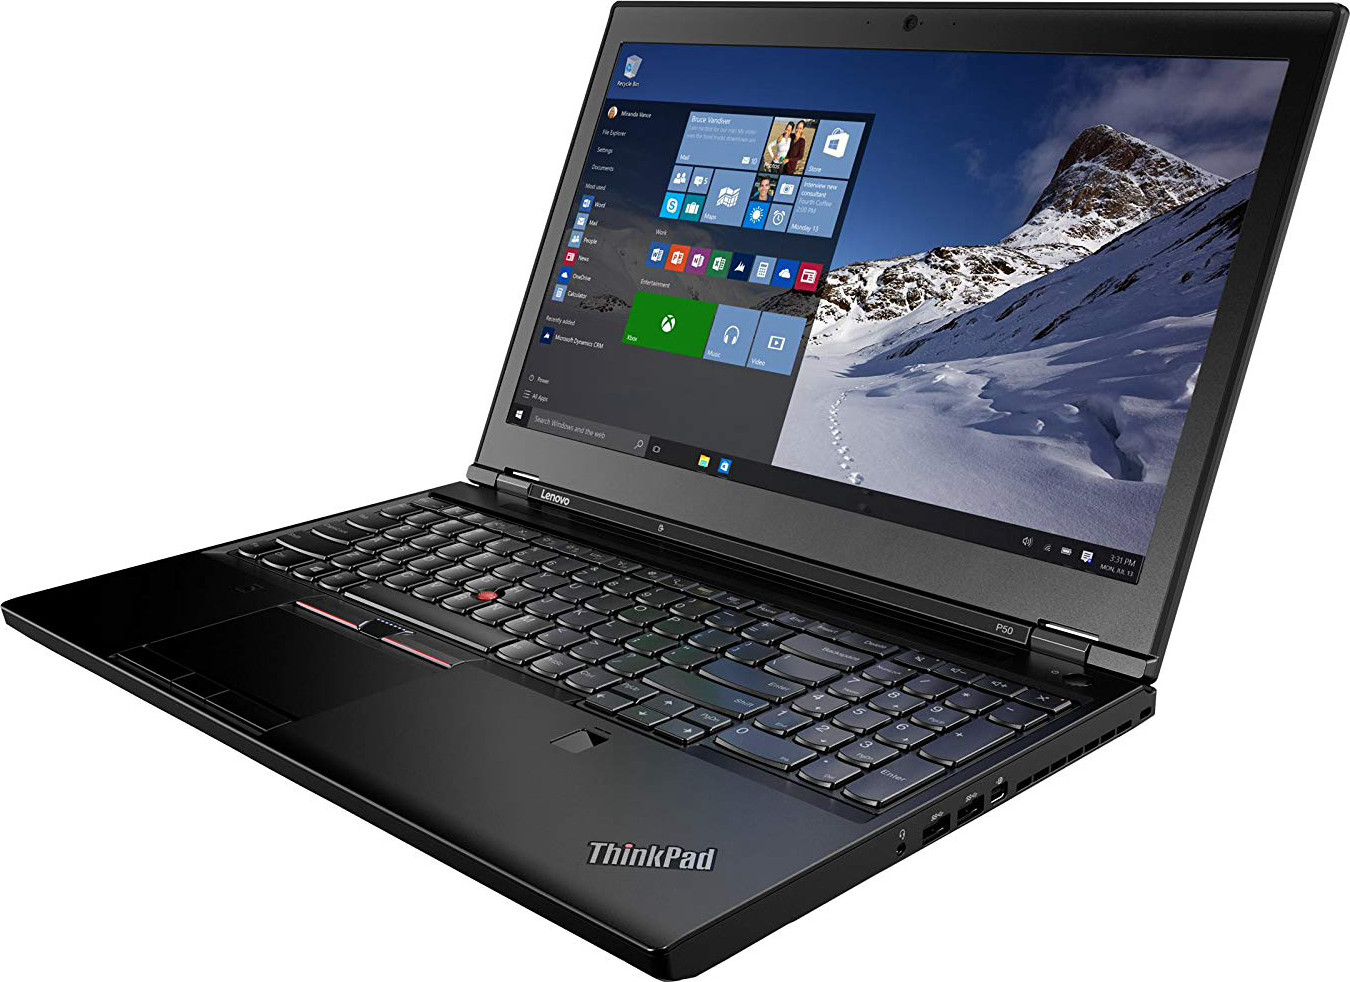 "Lenovo ThinkPad P50 20EN0013US 15.6"" Laptop - Intel Core i7-6700HQ (4core 2.60 GHz), 8GB RAM, 500GB Hard Drive, NVIDIA Quadro M1000M 2GB"